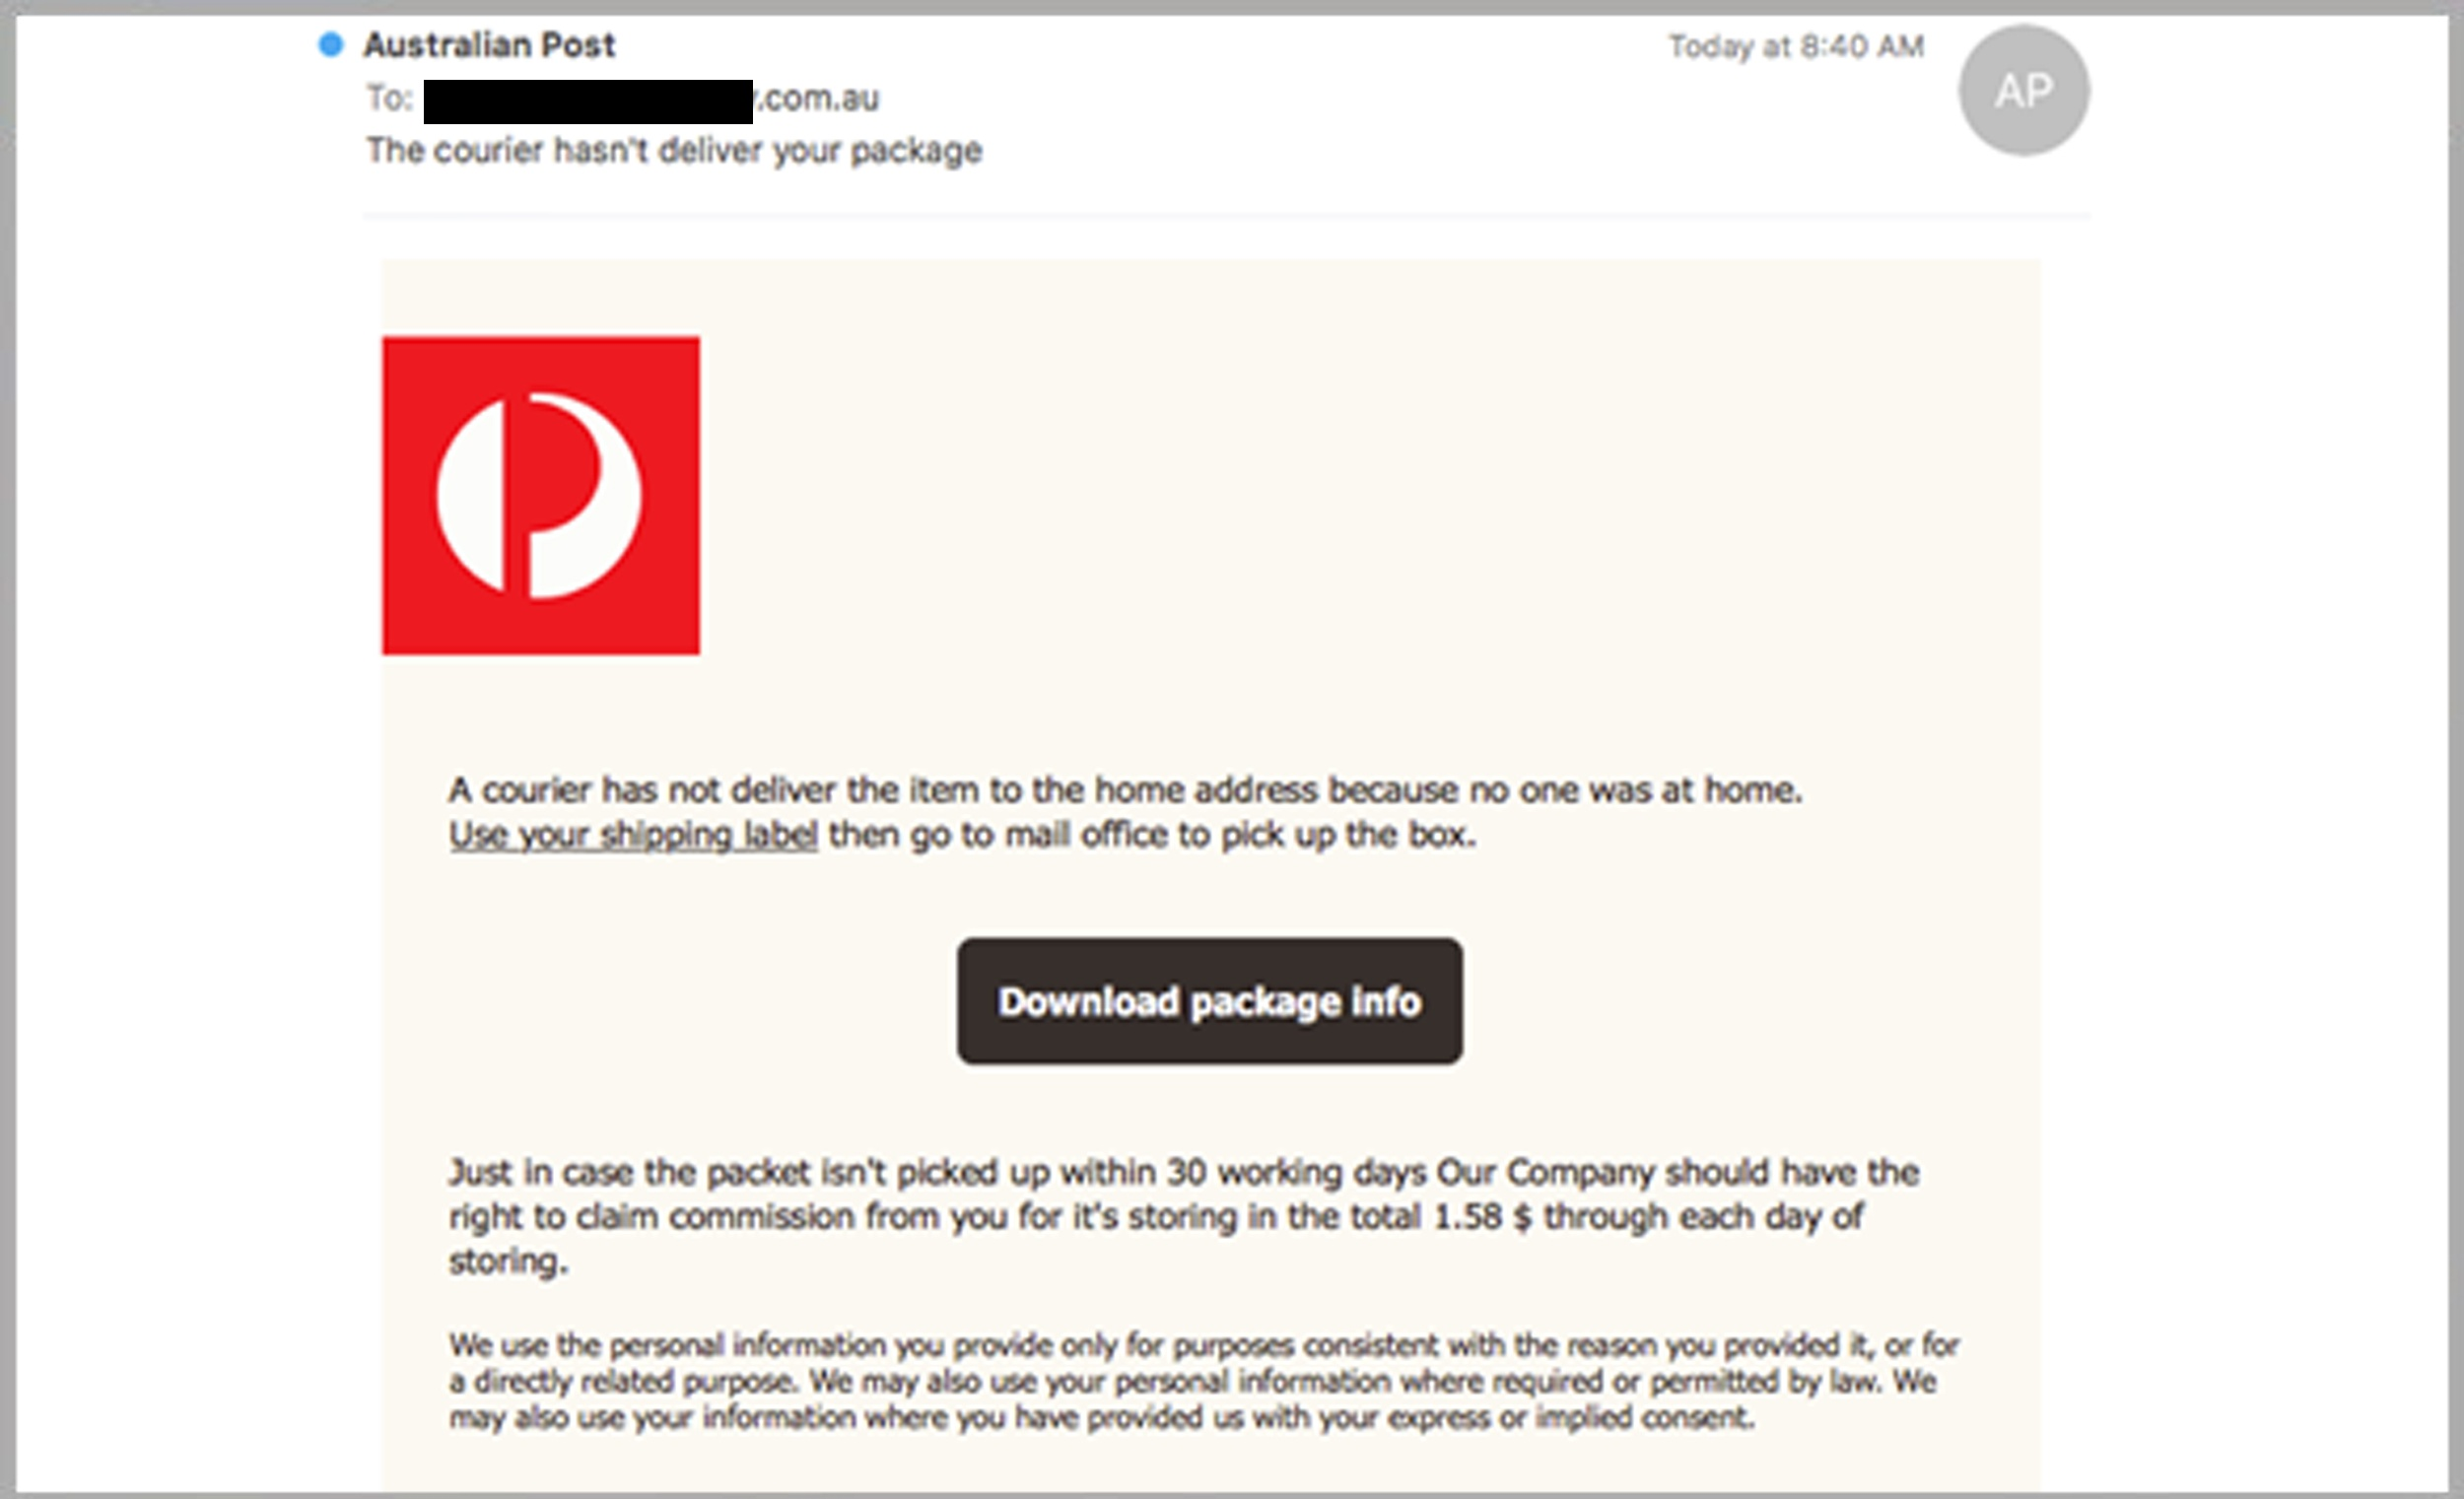 MailGuard_Fake_usPost_and_NZ_Post_Email_Scam_Email_Sample.jpg